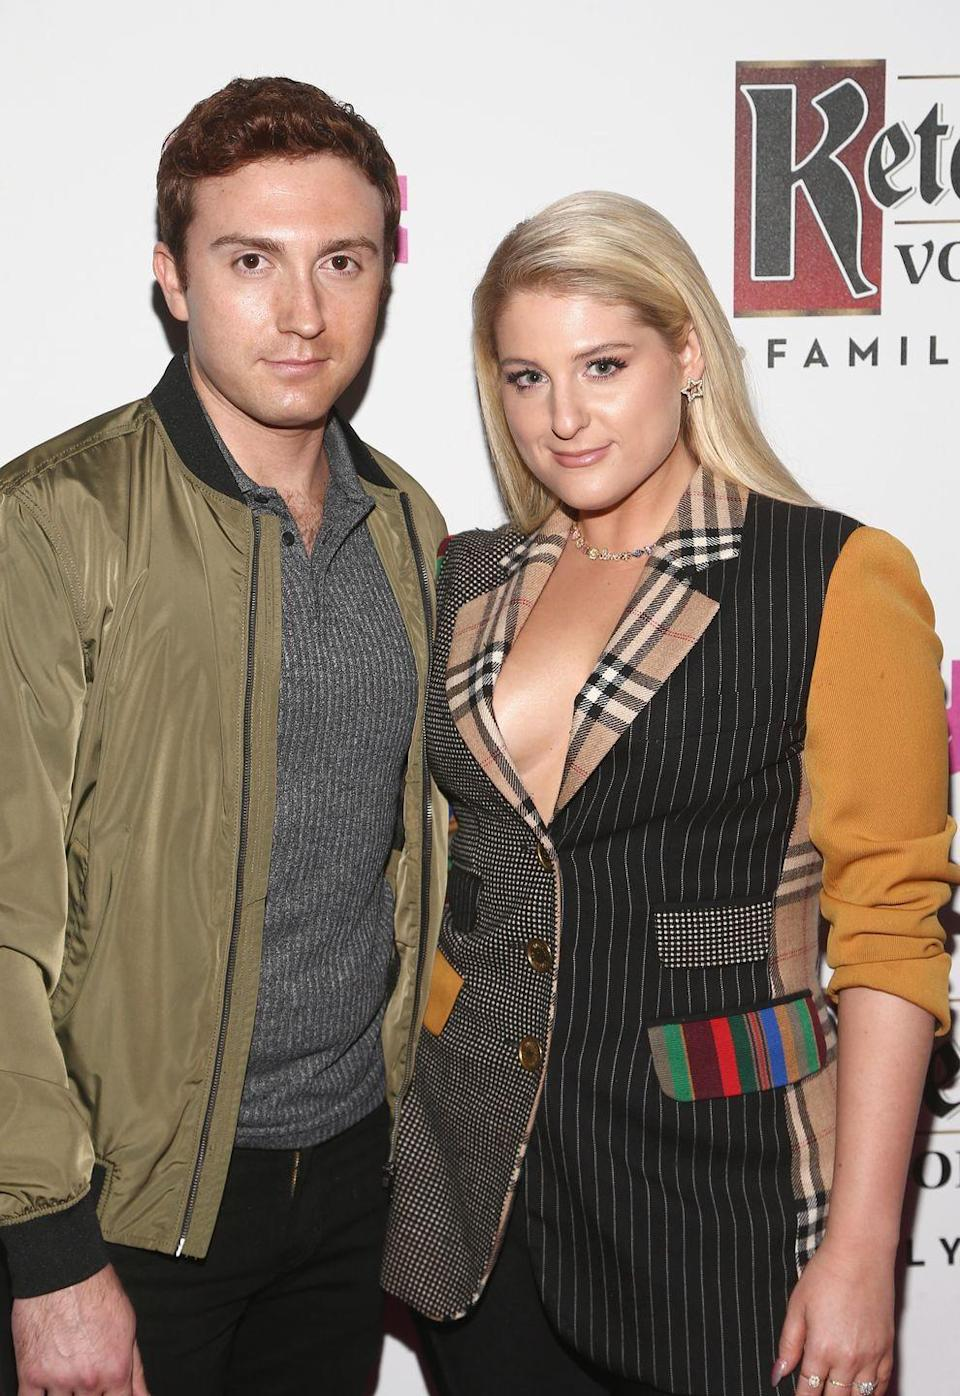 "<p>Trainor credits the good taste of her friend Chloë Grace Moretz for helping her find love with actor Daryl Sabara.</p><p>""[Chloë] is a friend of mine, and day one of meeting her, I was like, 'You know anybody that I could date?'"" she <a href=""https://people.com/music/meghan-trainor-boyfriend-daryl-sabara-introduced-by-chloe-grace-moretz/"" rel=""nofollow noopener"" target=""_blank"" data-ylk=""slk:said"" class=""link rapid-noclick-resp"">said</a> on Chelsea Handler's Netflix series. ""And she's like, 'I know the nicest guy in the world, Daryl, and you should meet him!'""<br></p>"